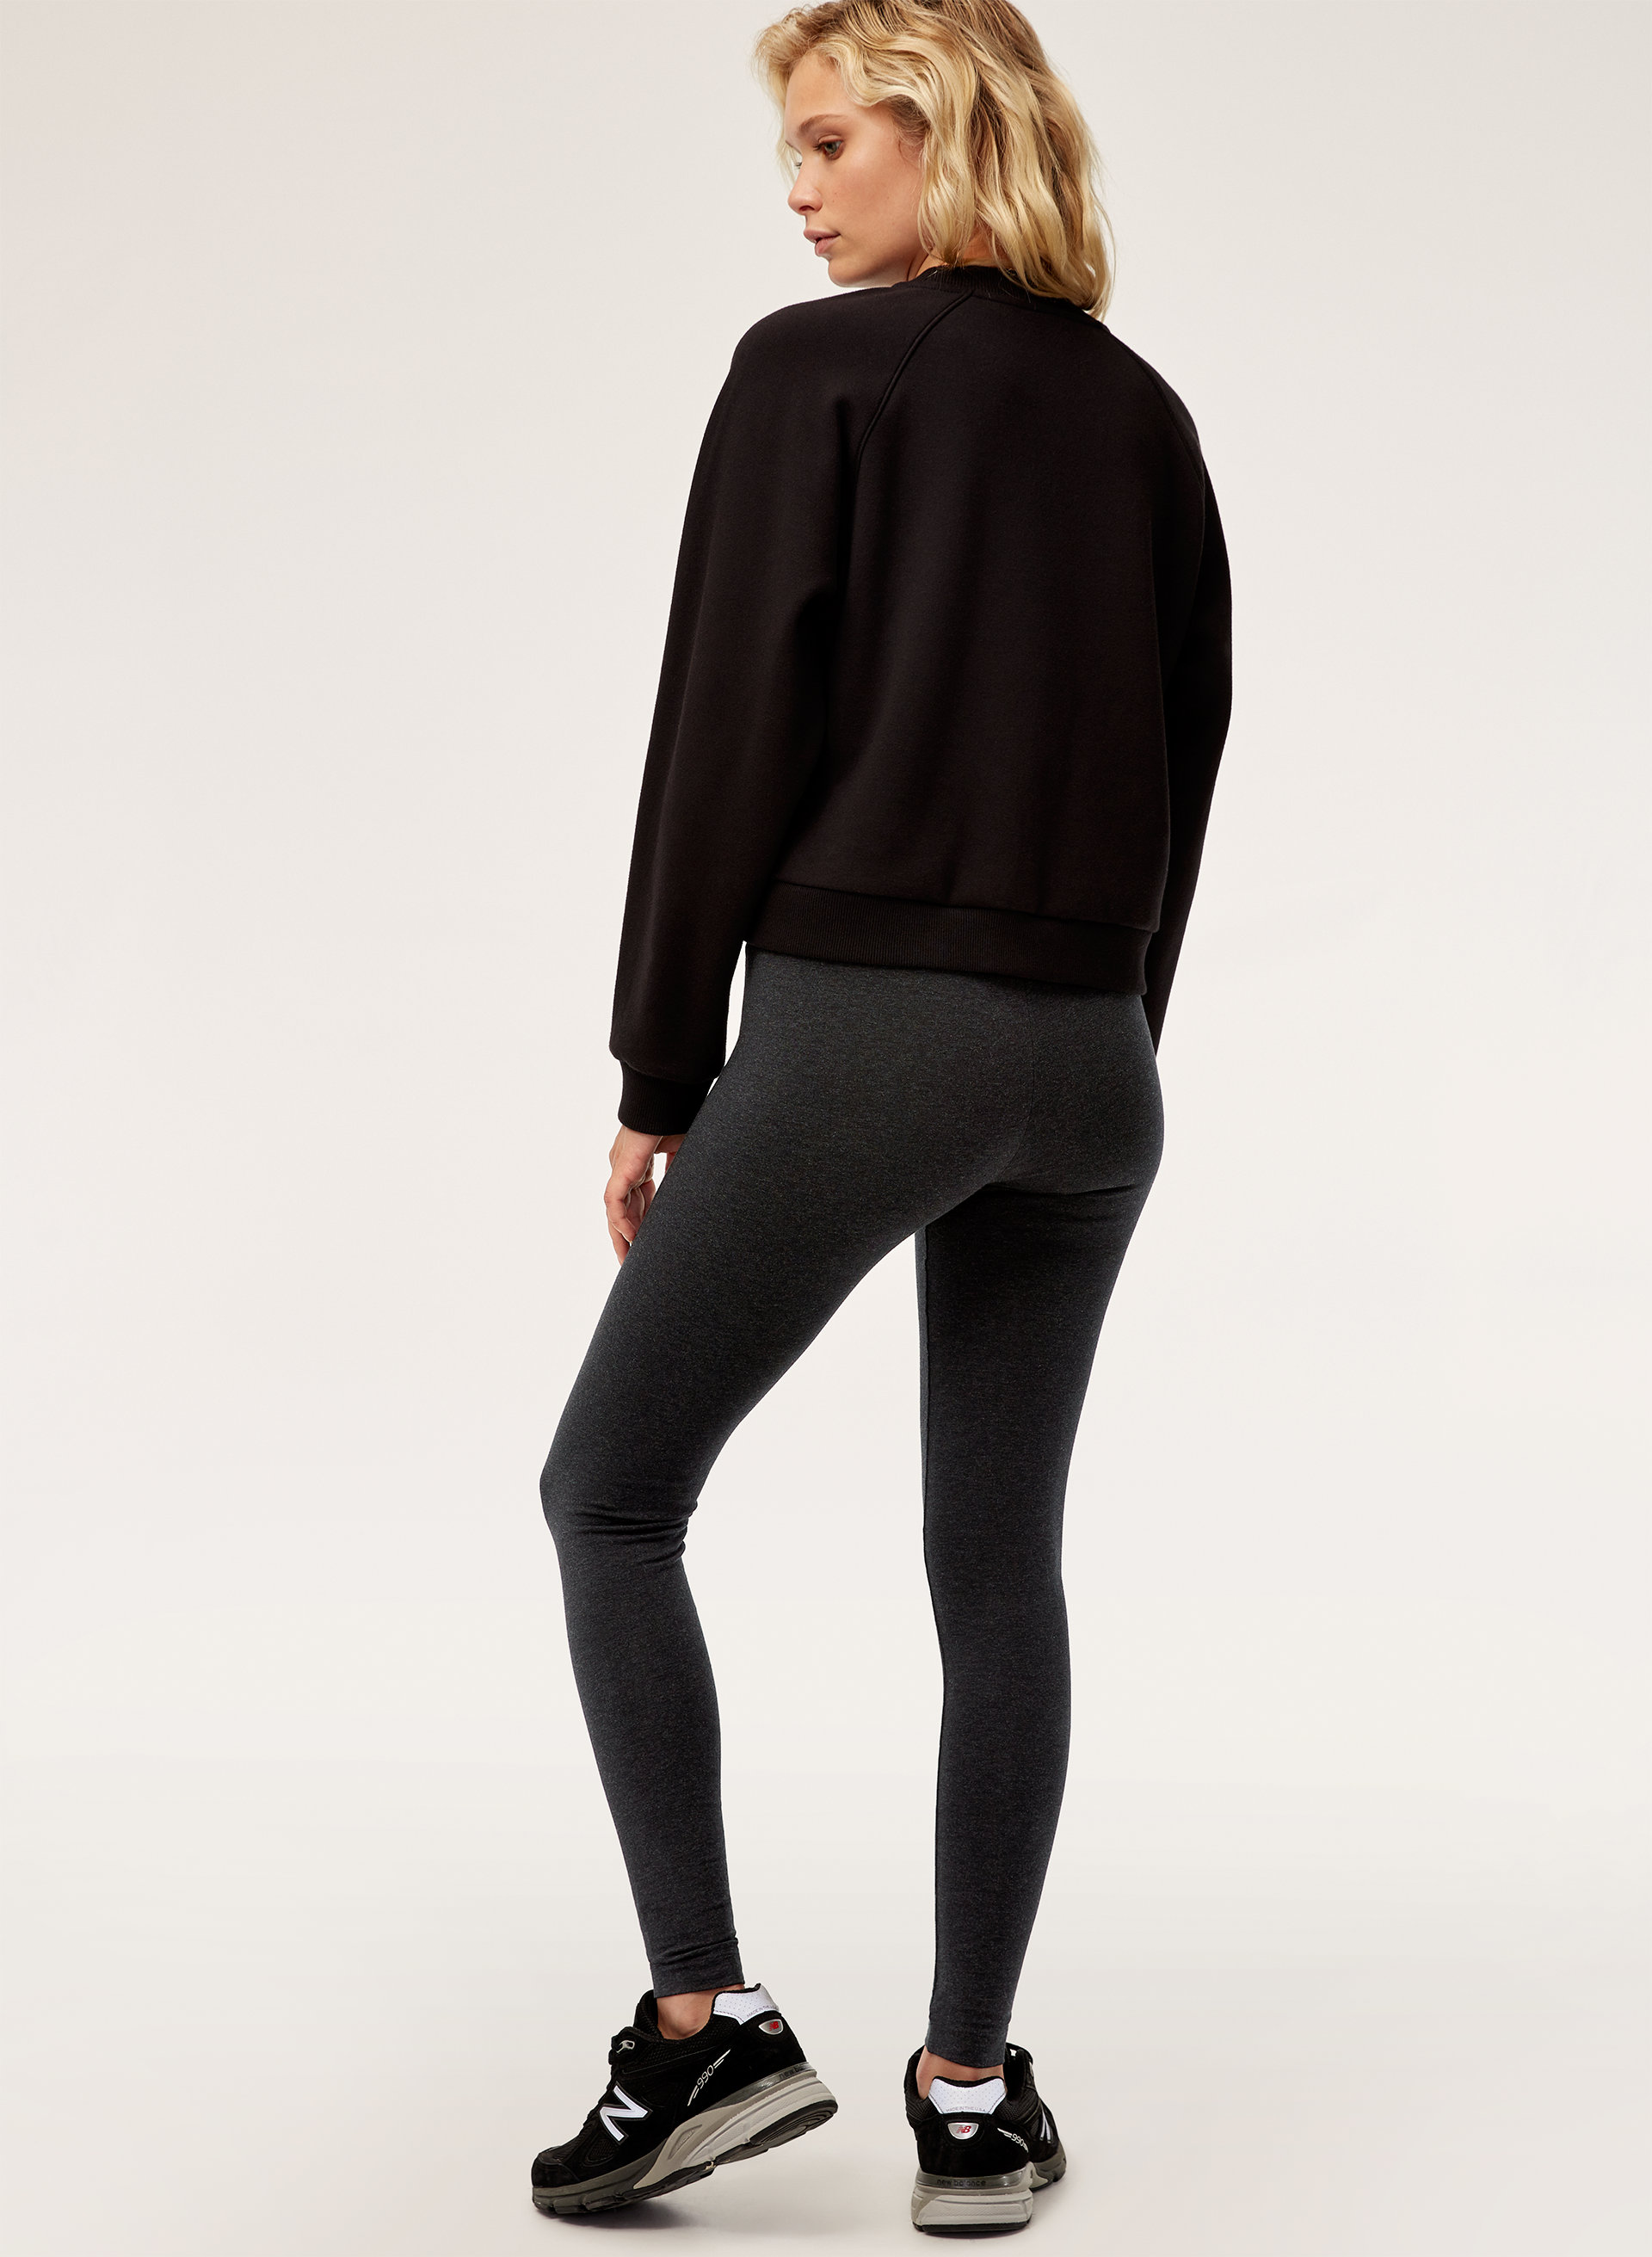 6cbe1e4c7c6604 Sunday Best MULLALY LEGGING | Aritzia US